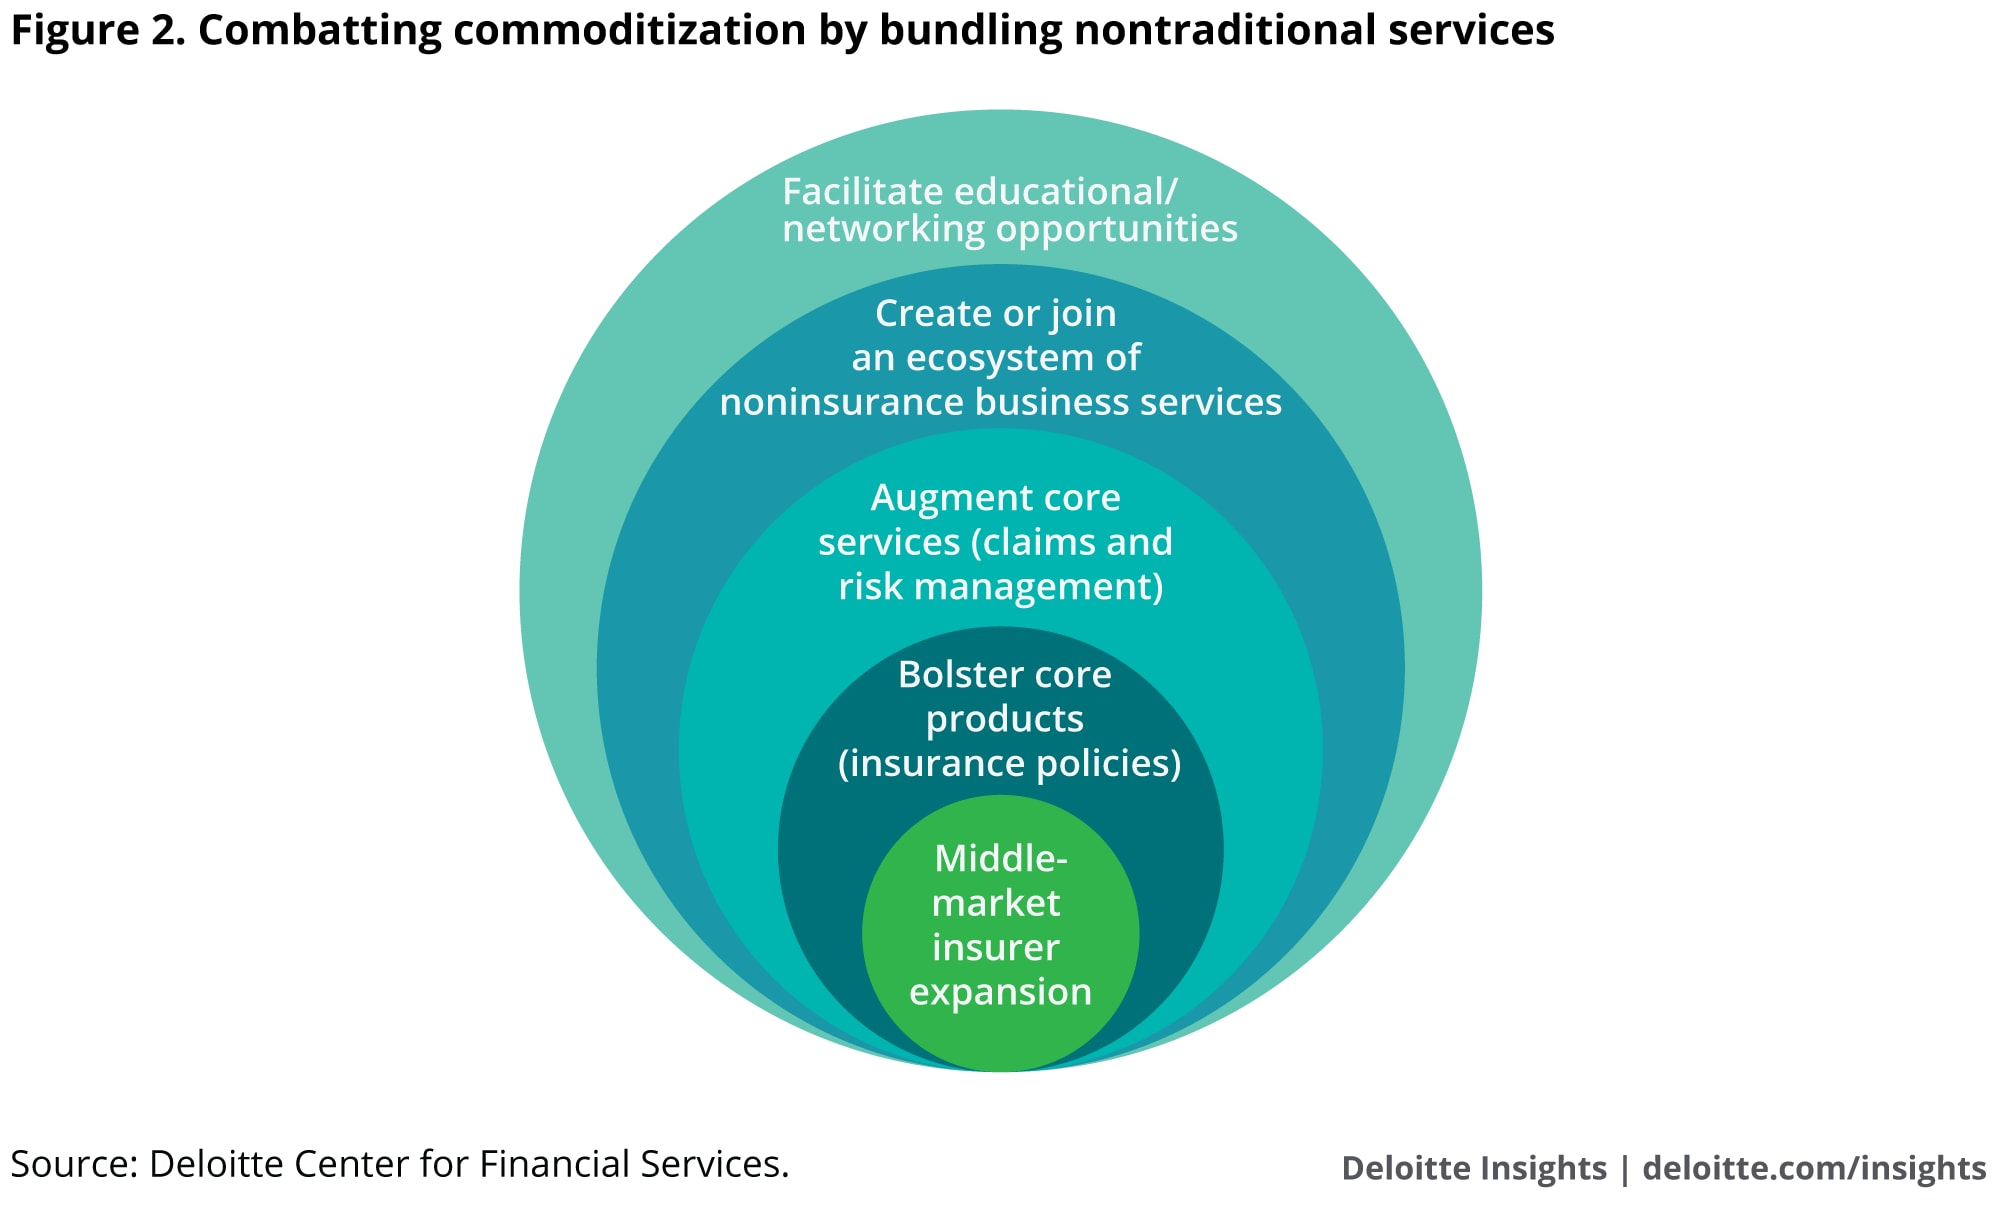 Combatting commoditization by bundling nontraditional services